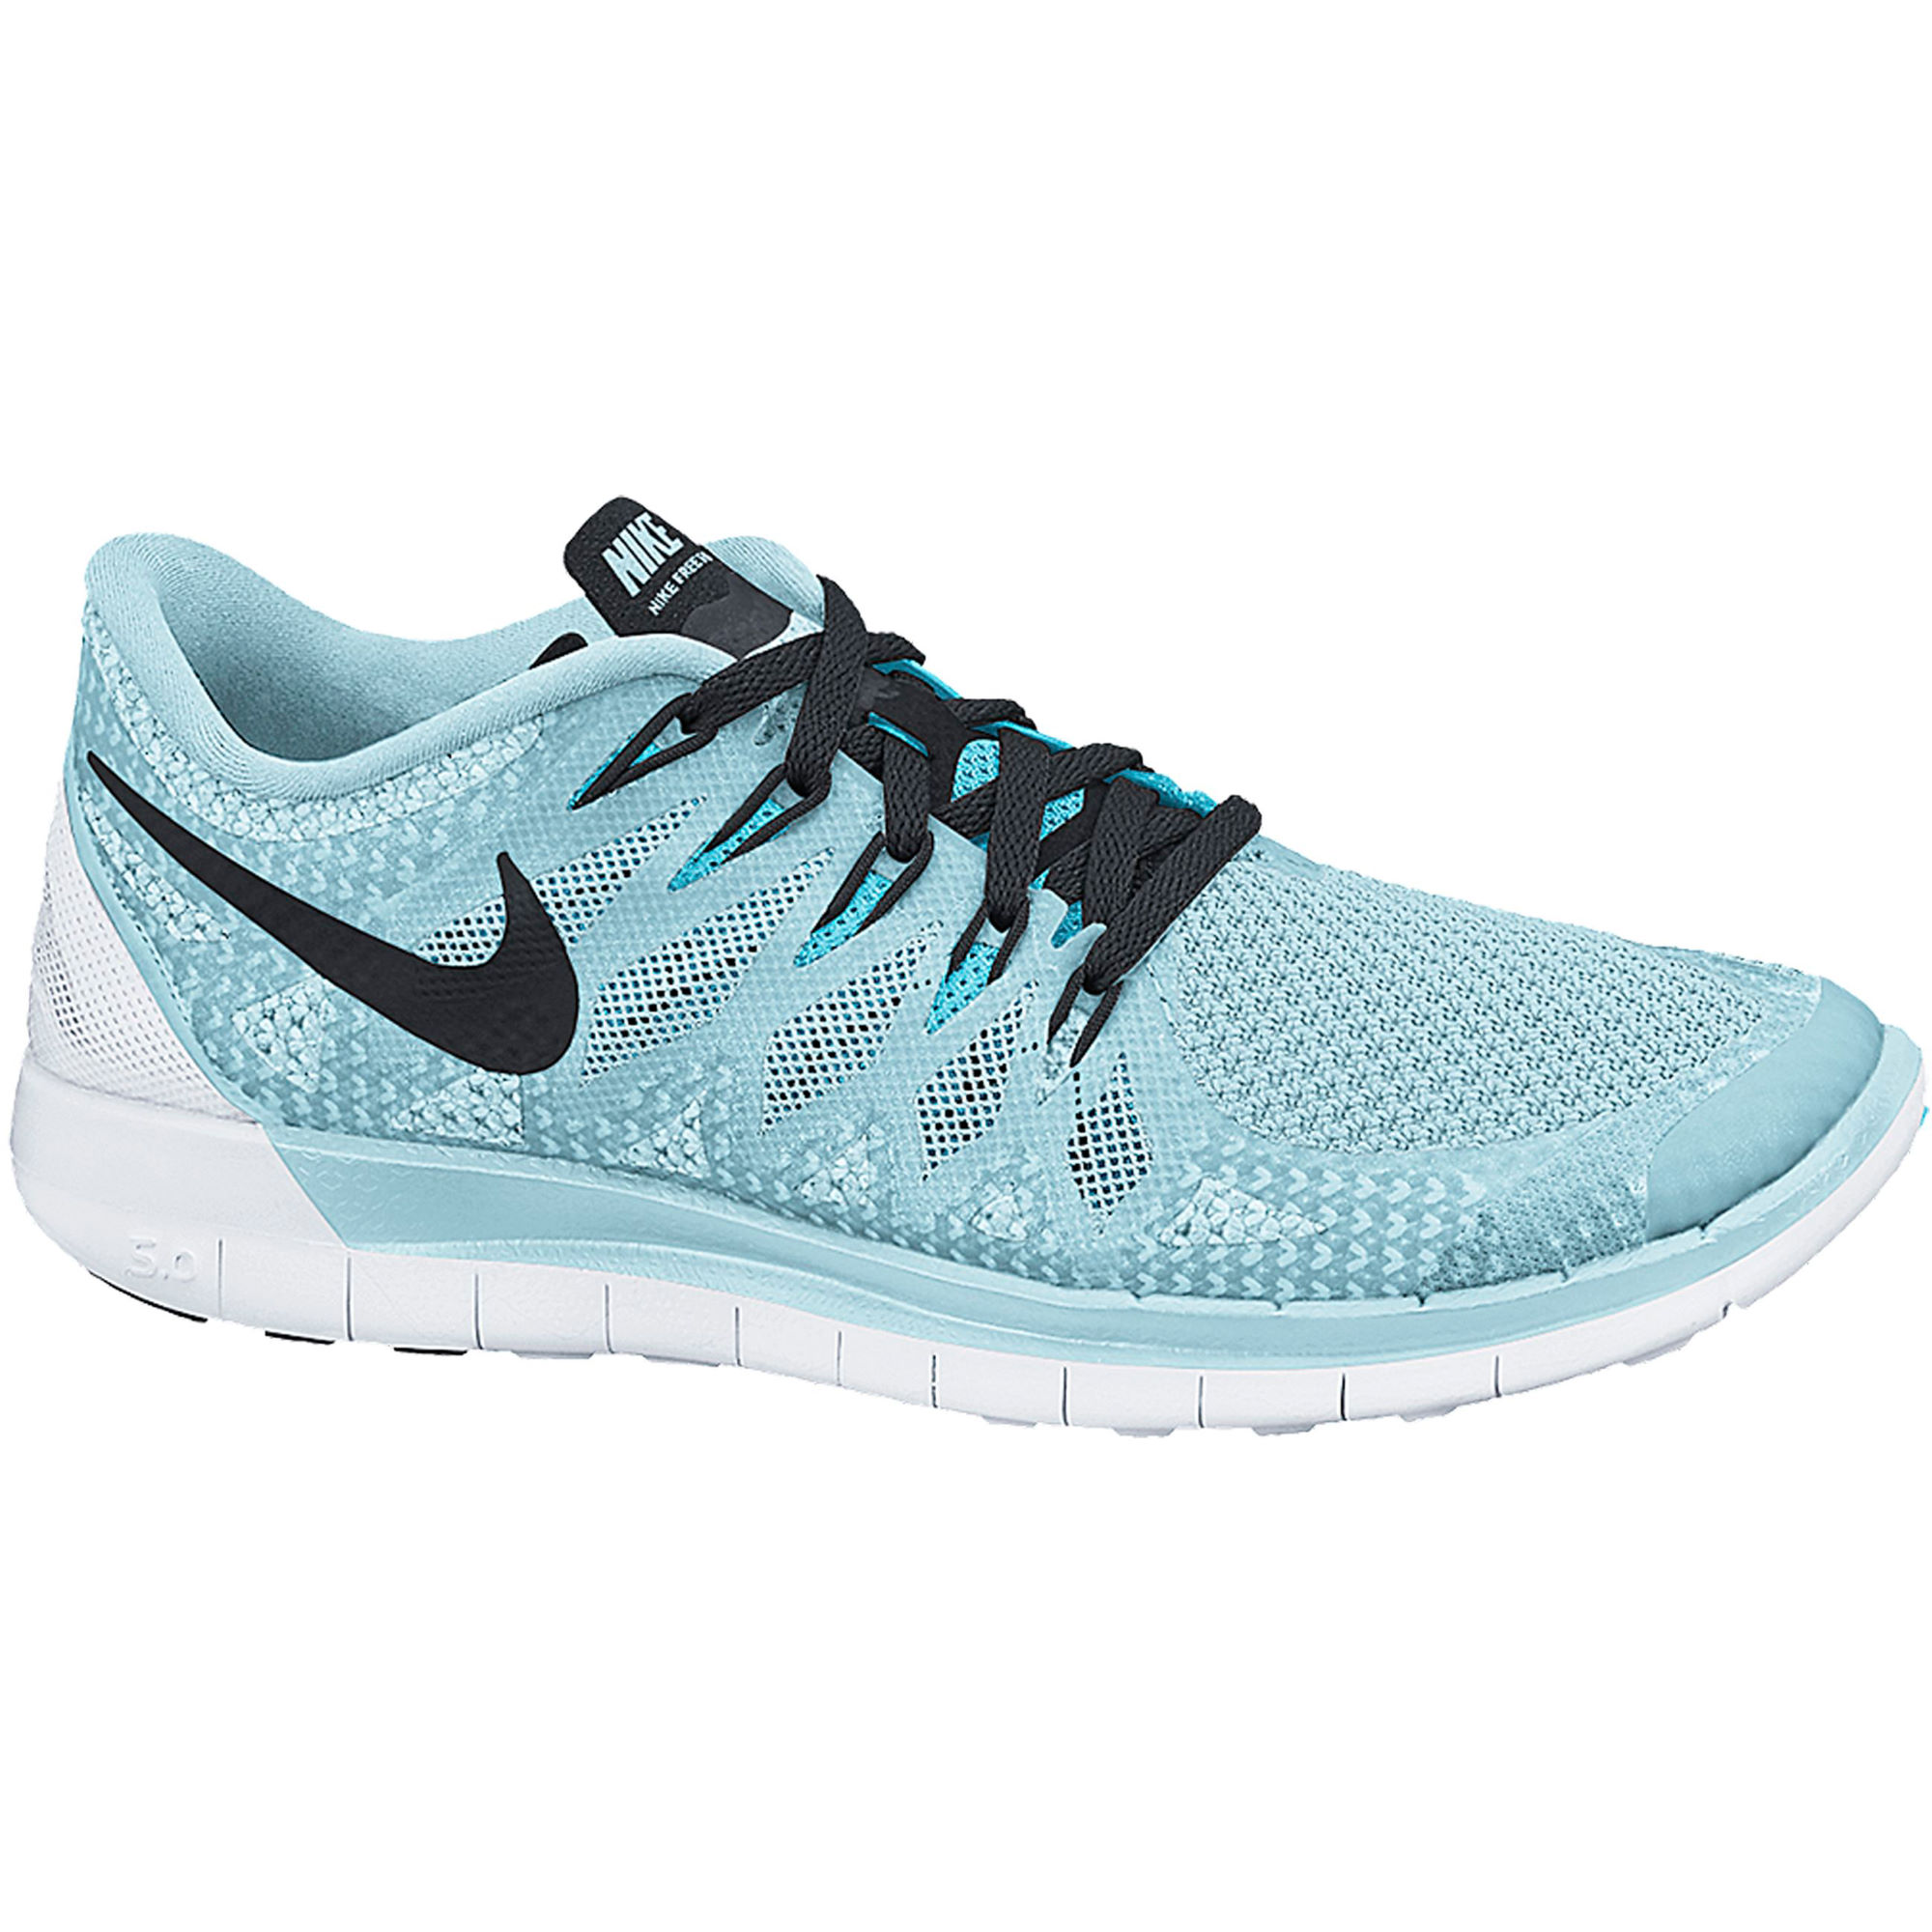 Nike Free 5.0 Women's Running Shoes - Sp15